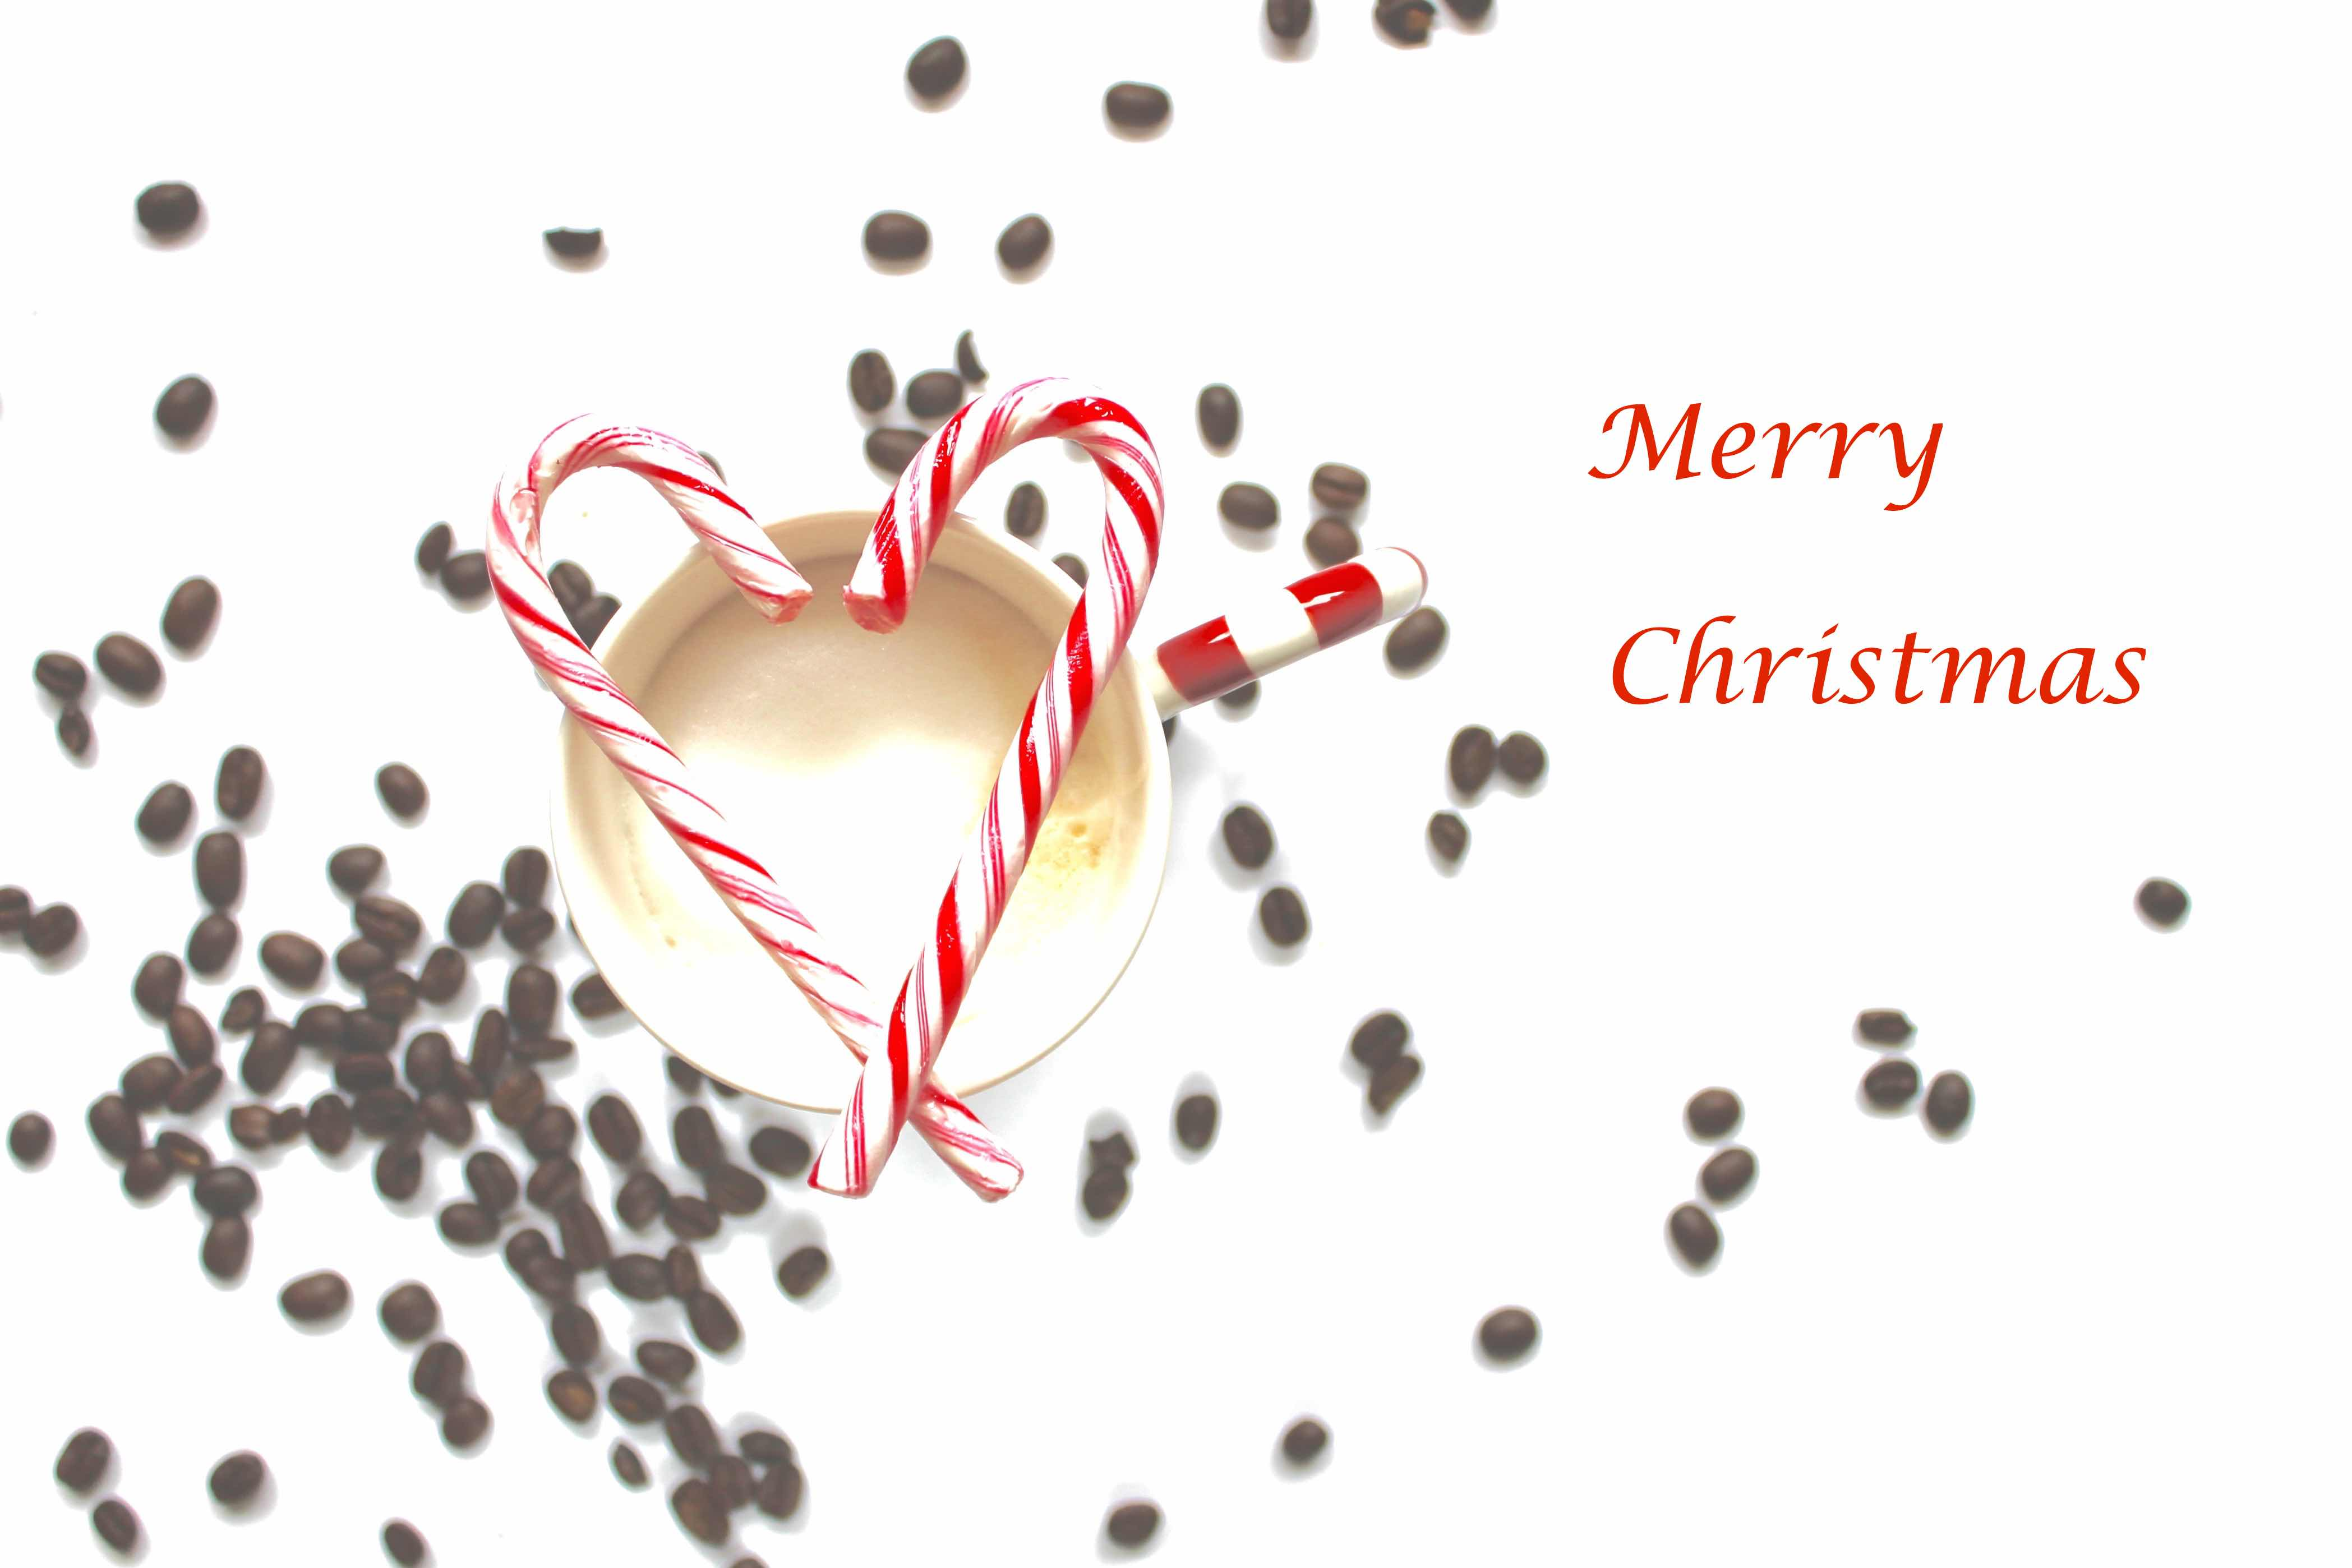 Merry_Christmas_Frohes_Fest_soulsistermeetsfriends